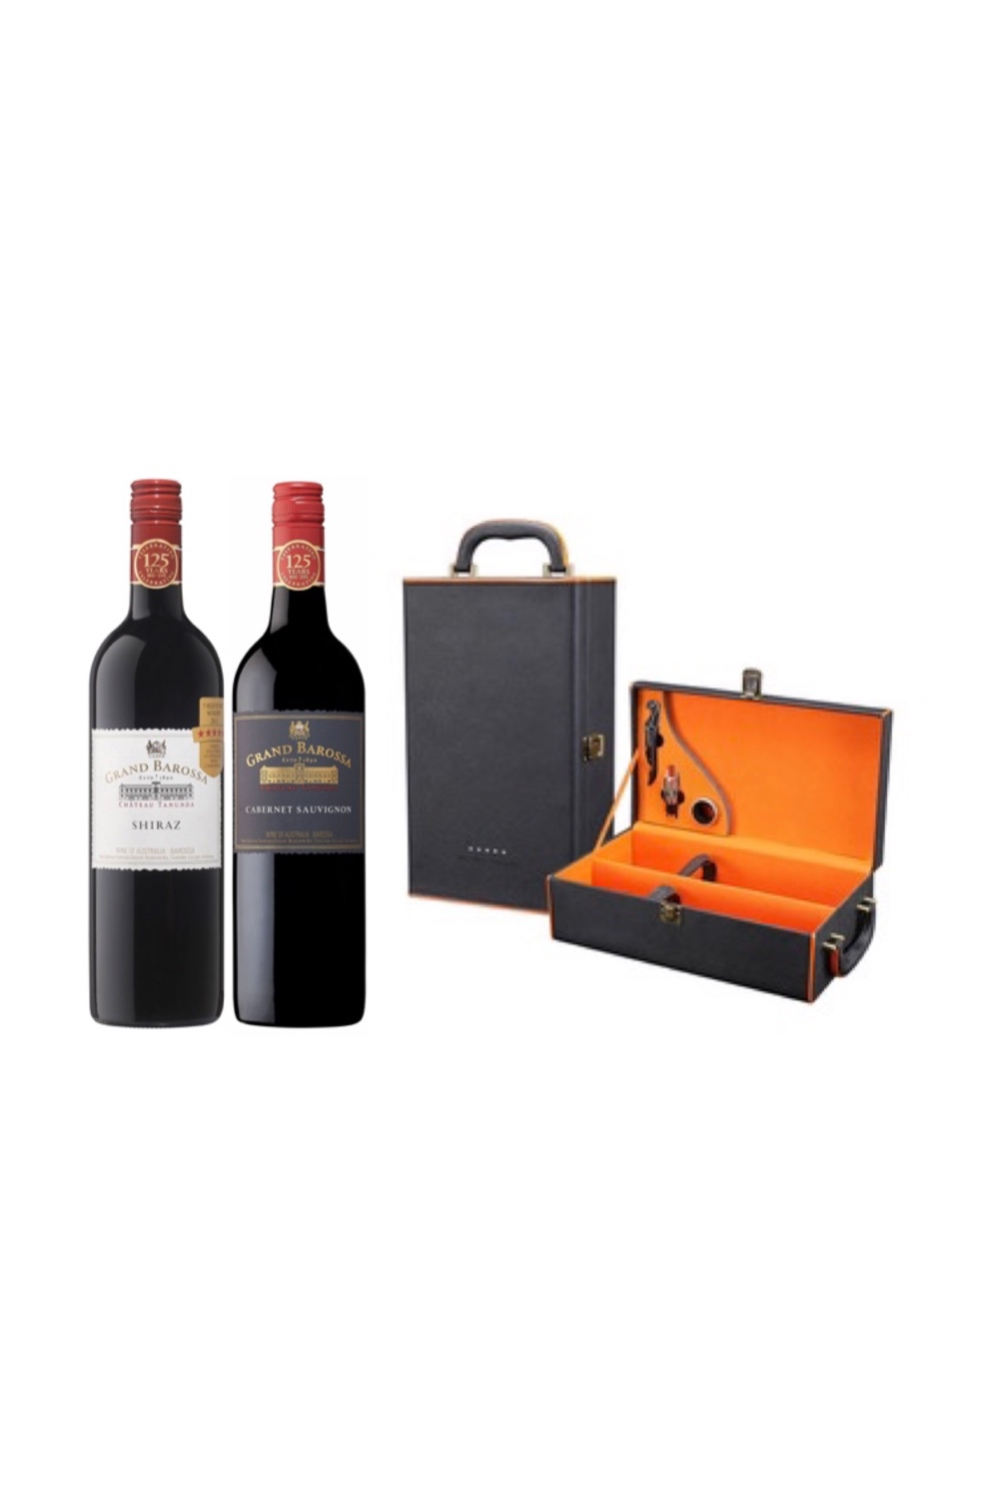 1 Month Aussie/New Zealand/South-Africa discovery Wine Gift Subscription